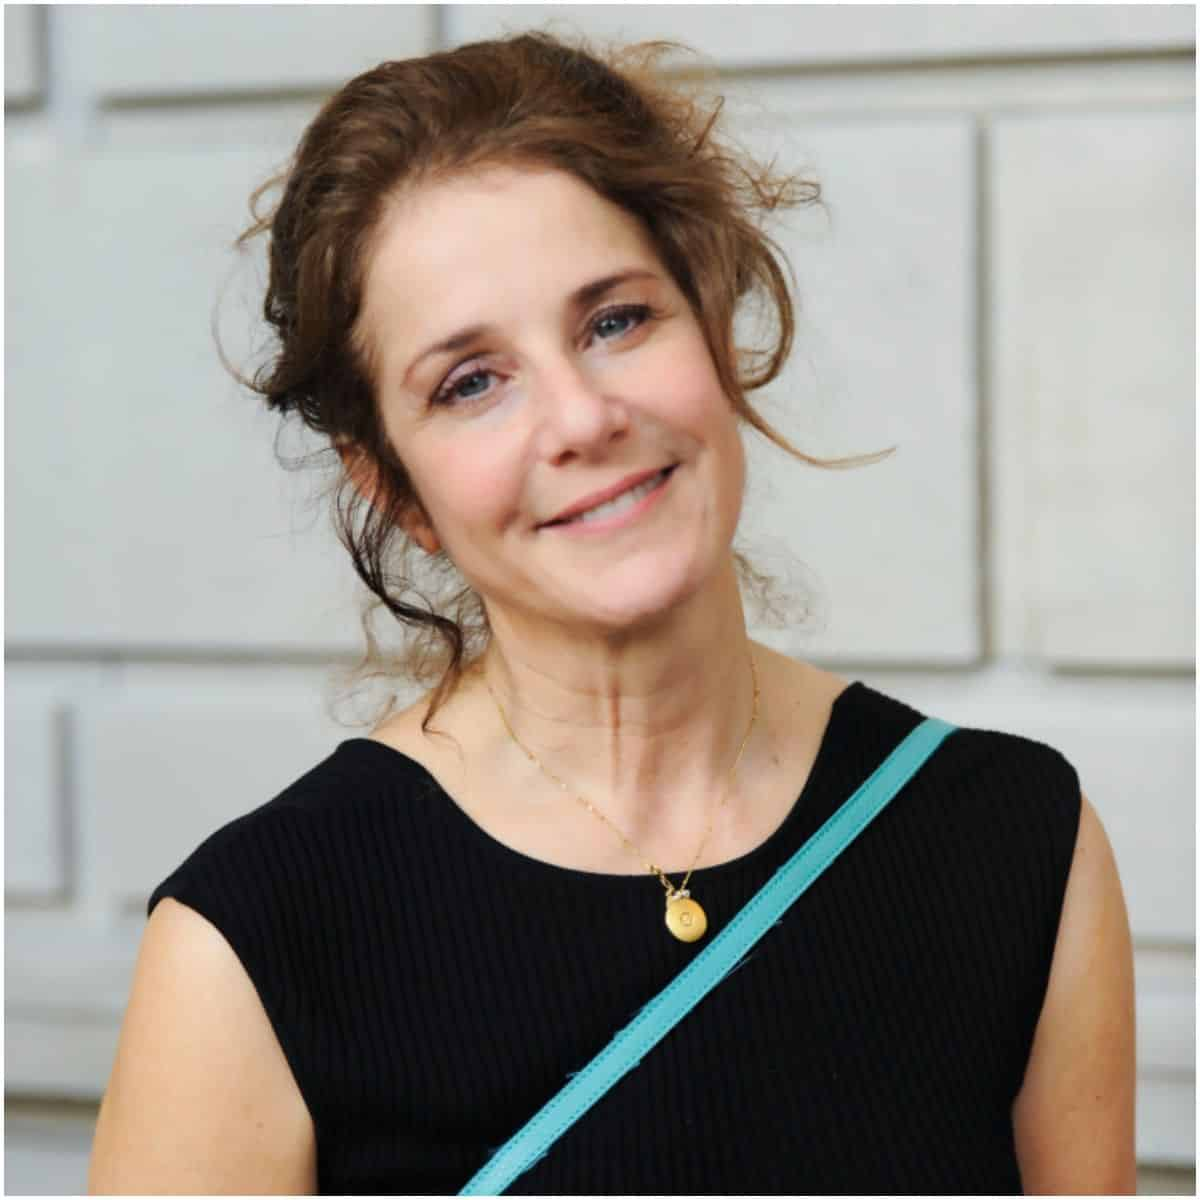 what is the net worth of Debra Winger